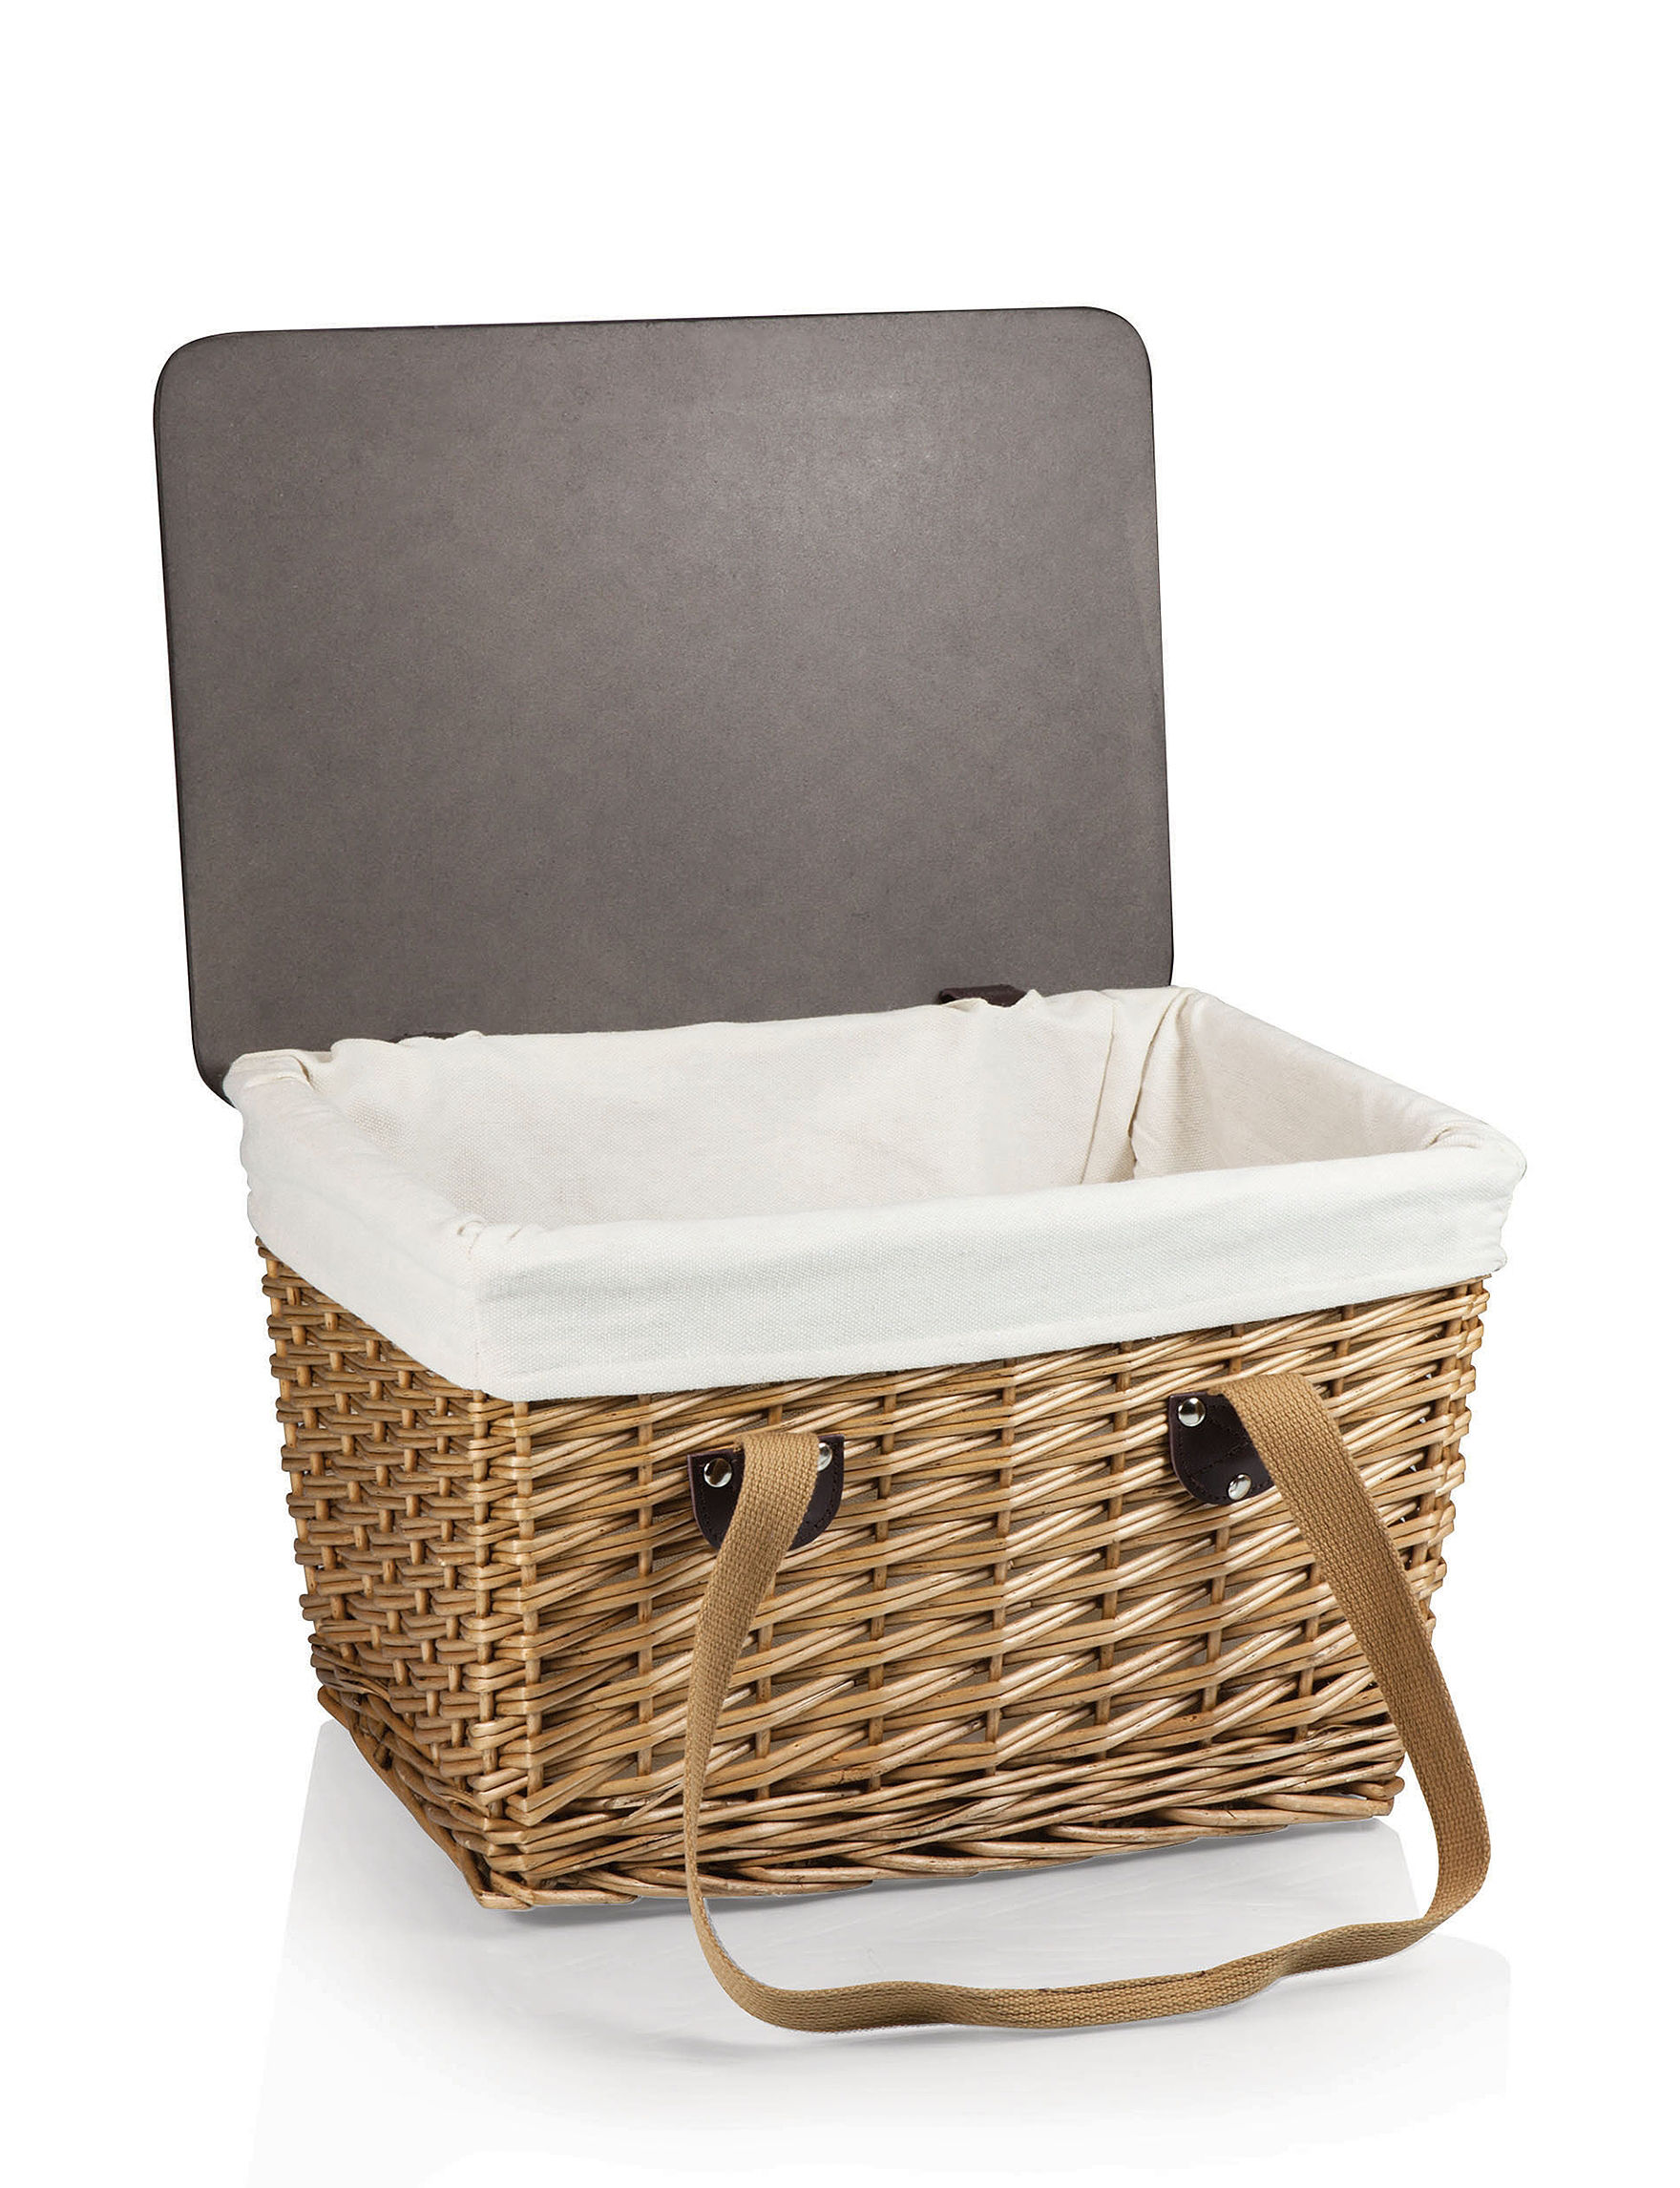 Picnic TIme  Carriers & Totes Outdoor Entertaining